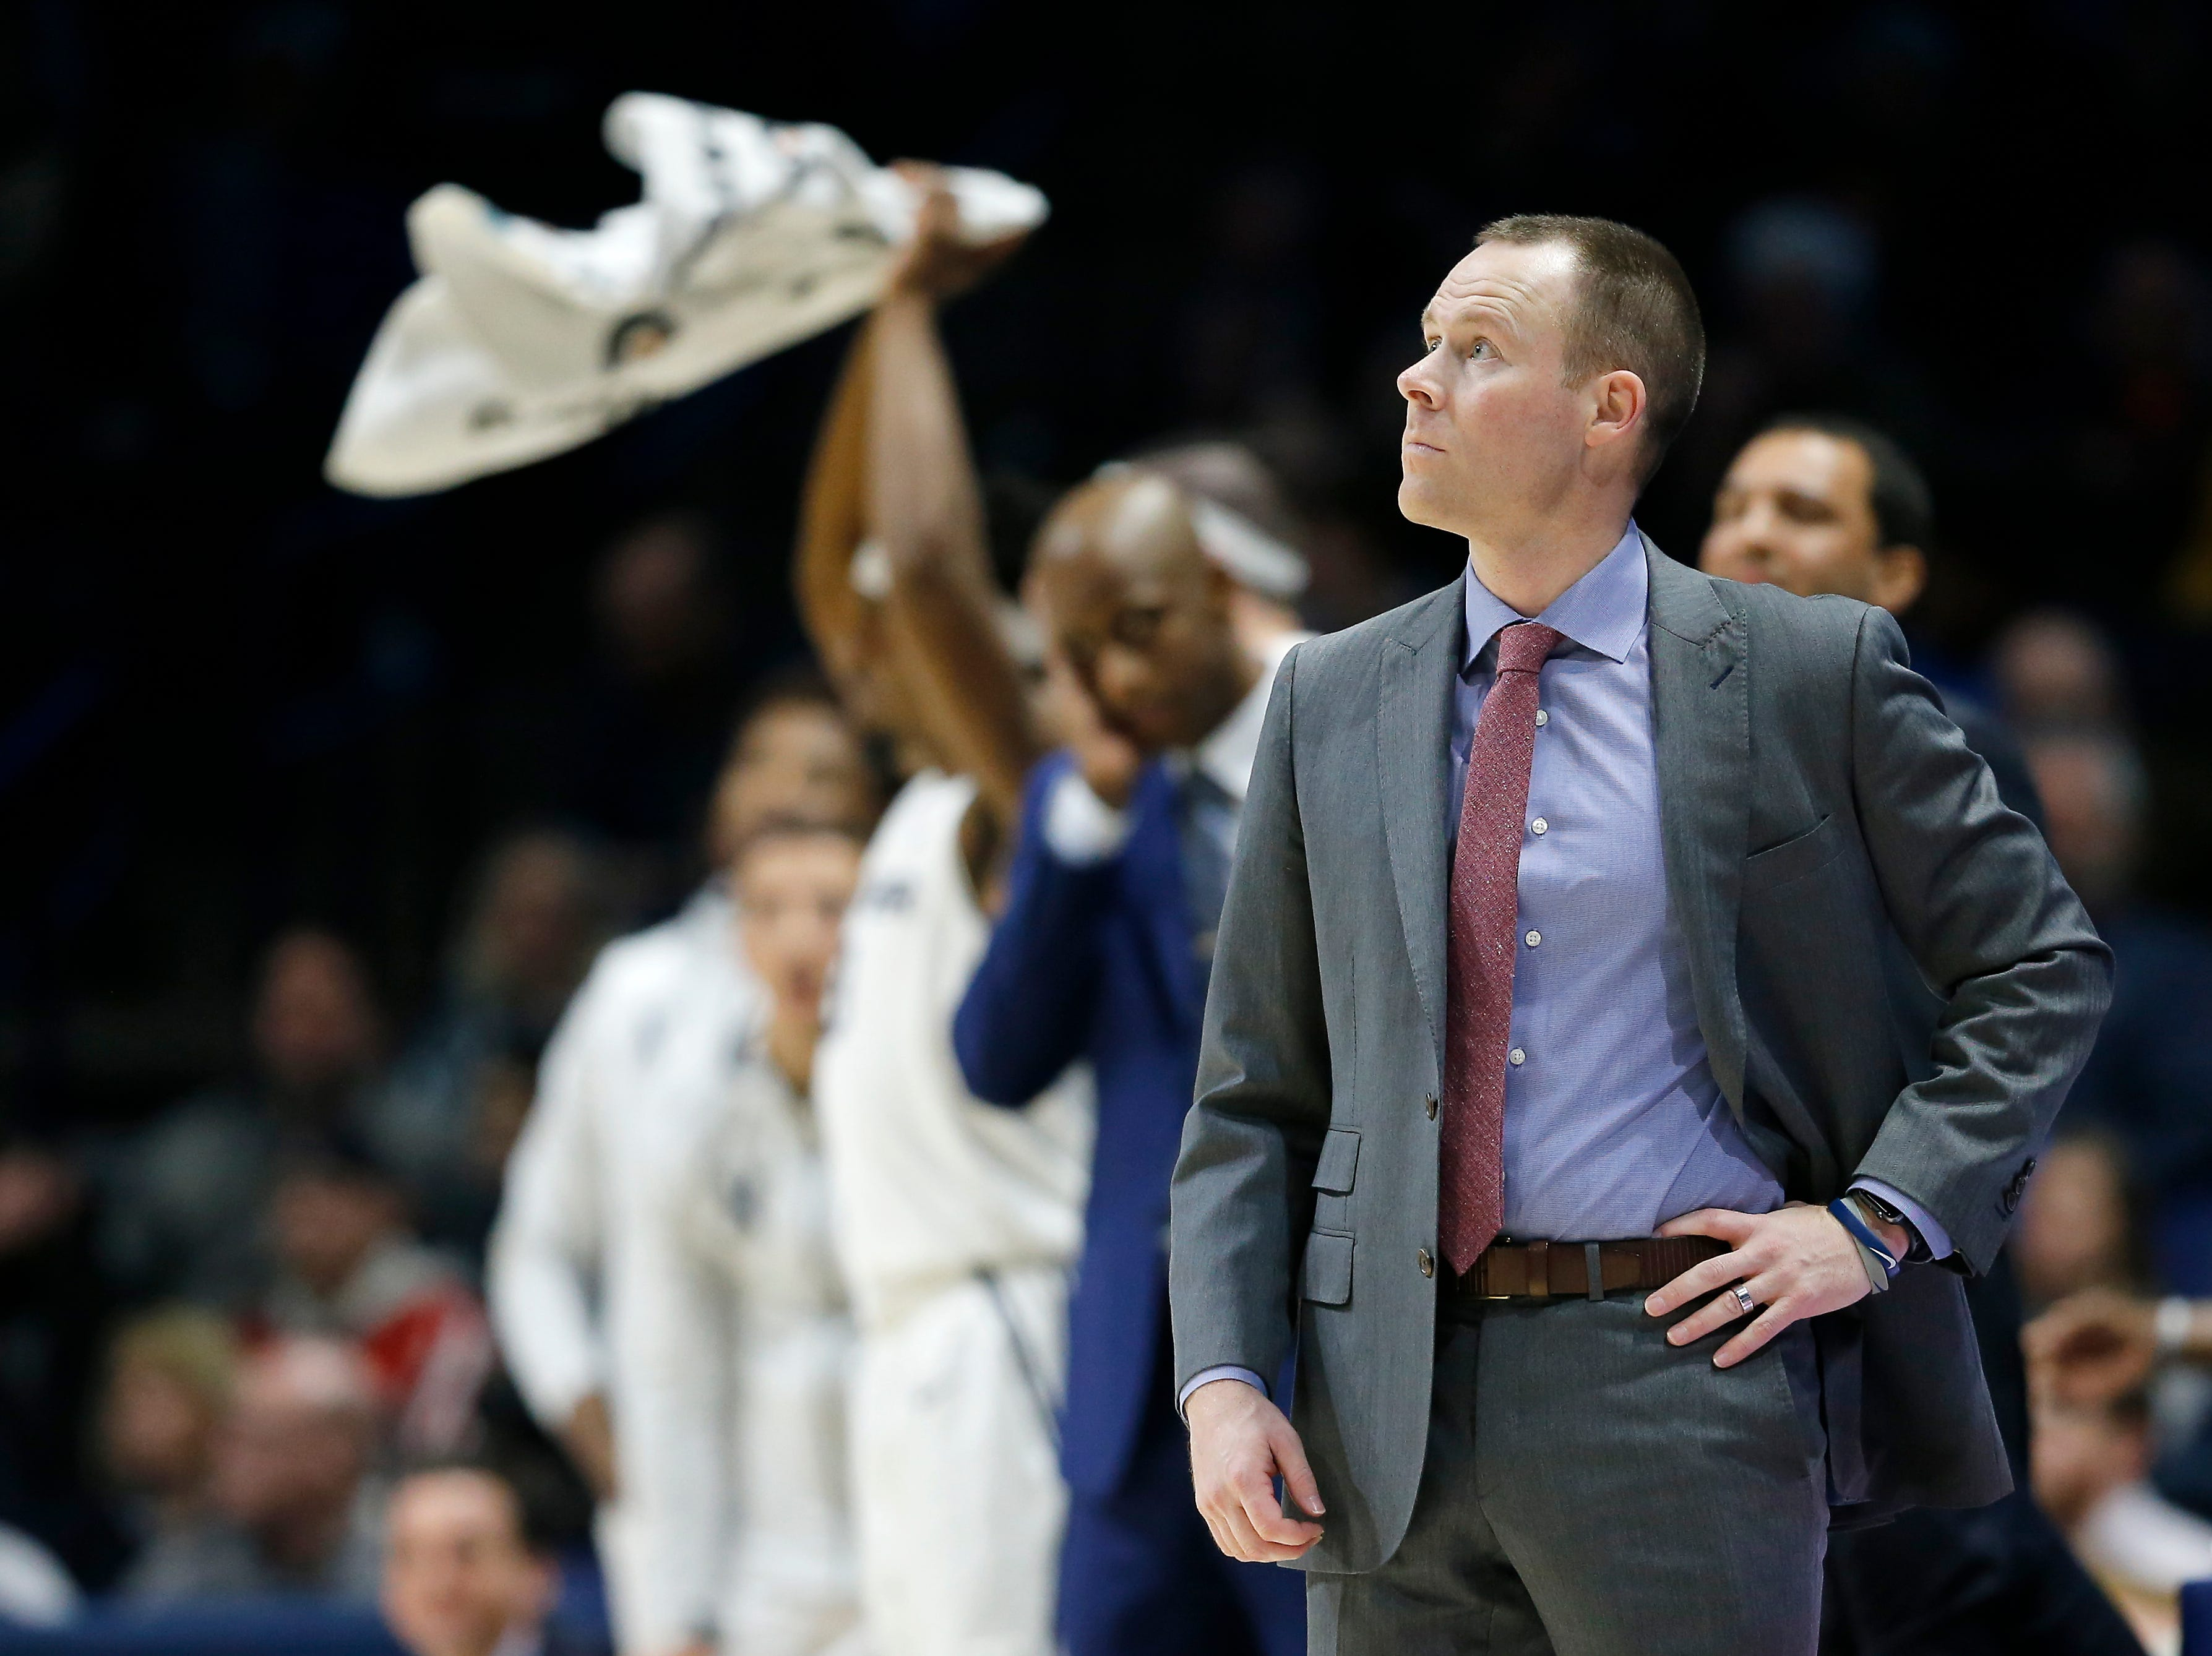 Xavier Musketeers head coach Travis Steele looks up to the big screen in the first half of the NCAA Big East Conference basketball game between the Xavier Musketeers and the Creighton Bluejays at Xavier's Cintas Center in Cincinnati on Wednesday, Feb. 13, 2019. Xavier led 36-30 at halftime.